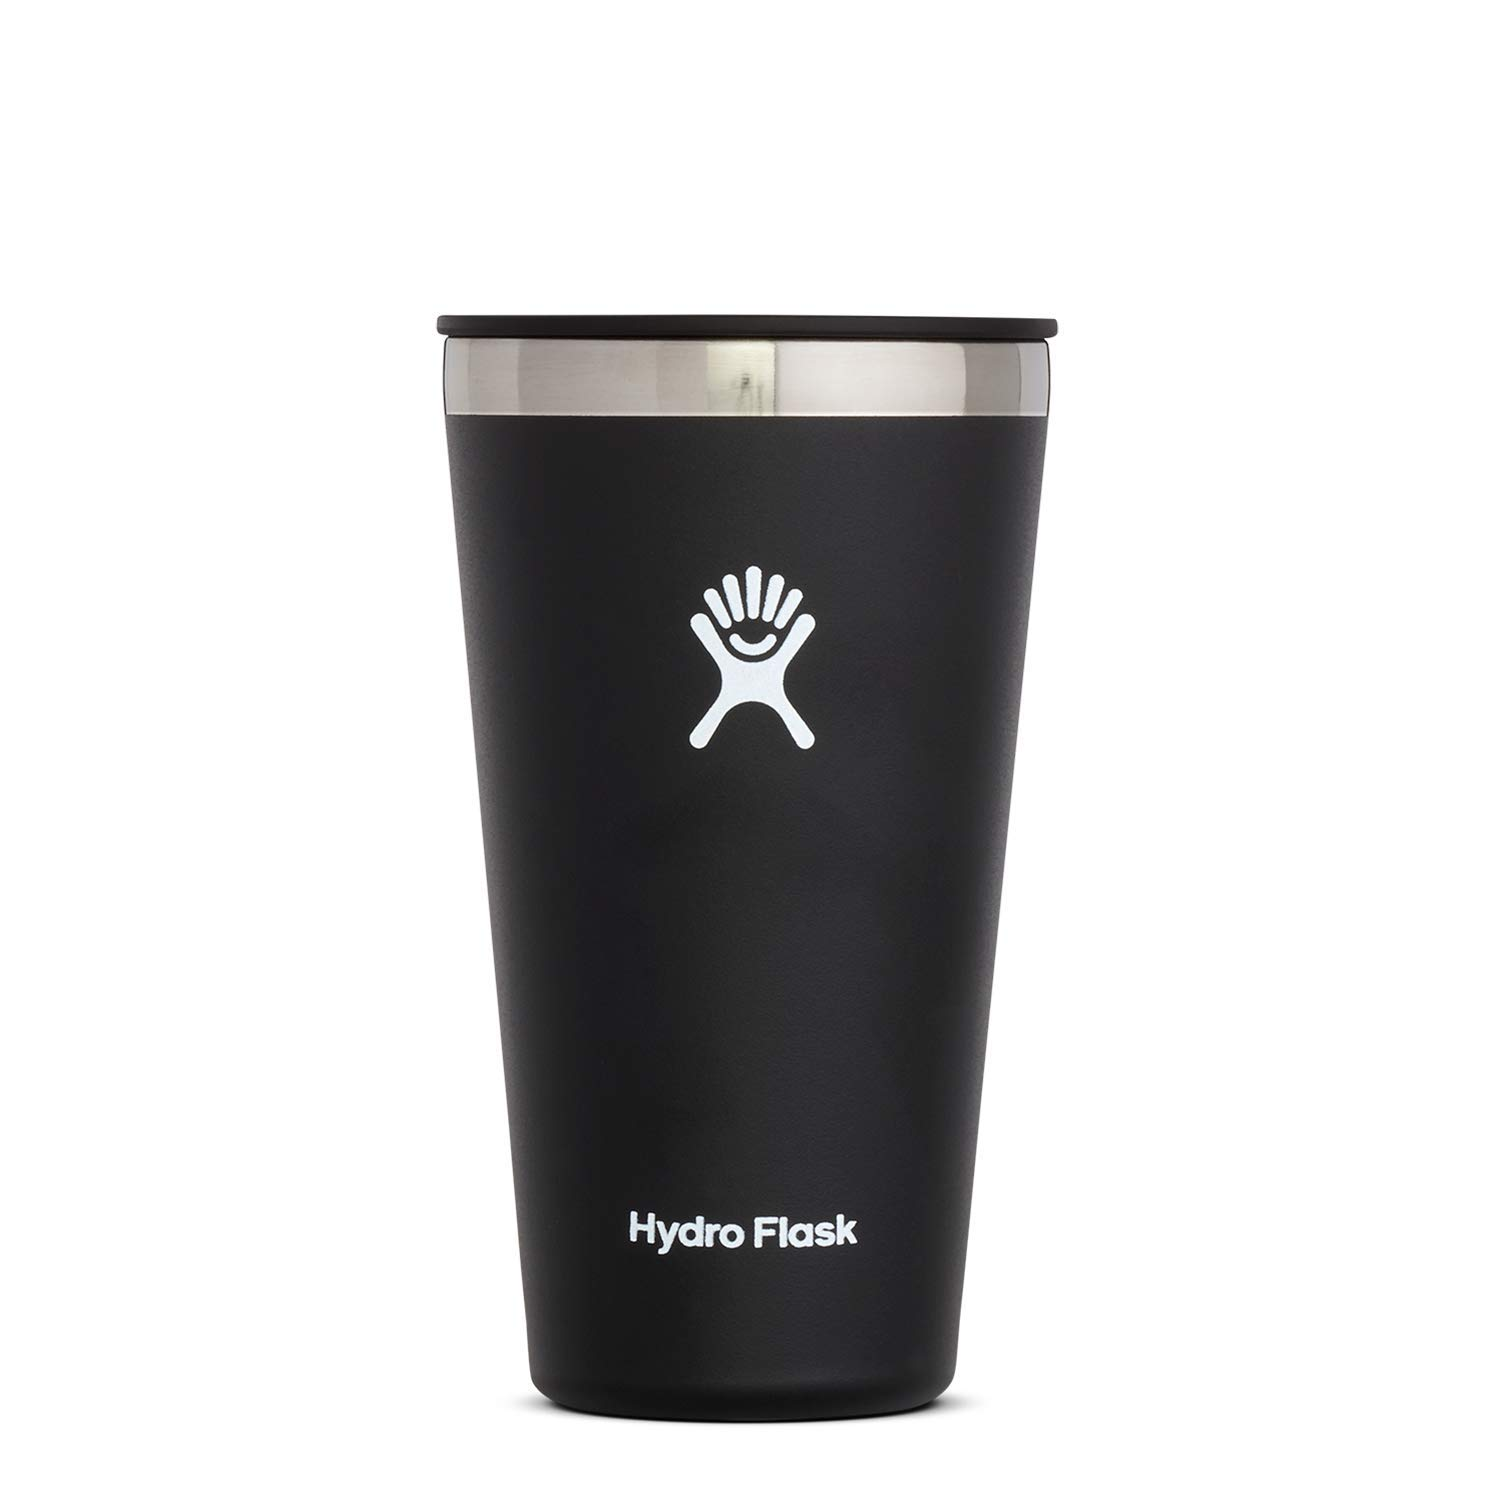 Hydro Flask Tumbler Cup - Stainless Steel & Vacuum Insulated - Press-In Lid - 16 oz, Black